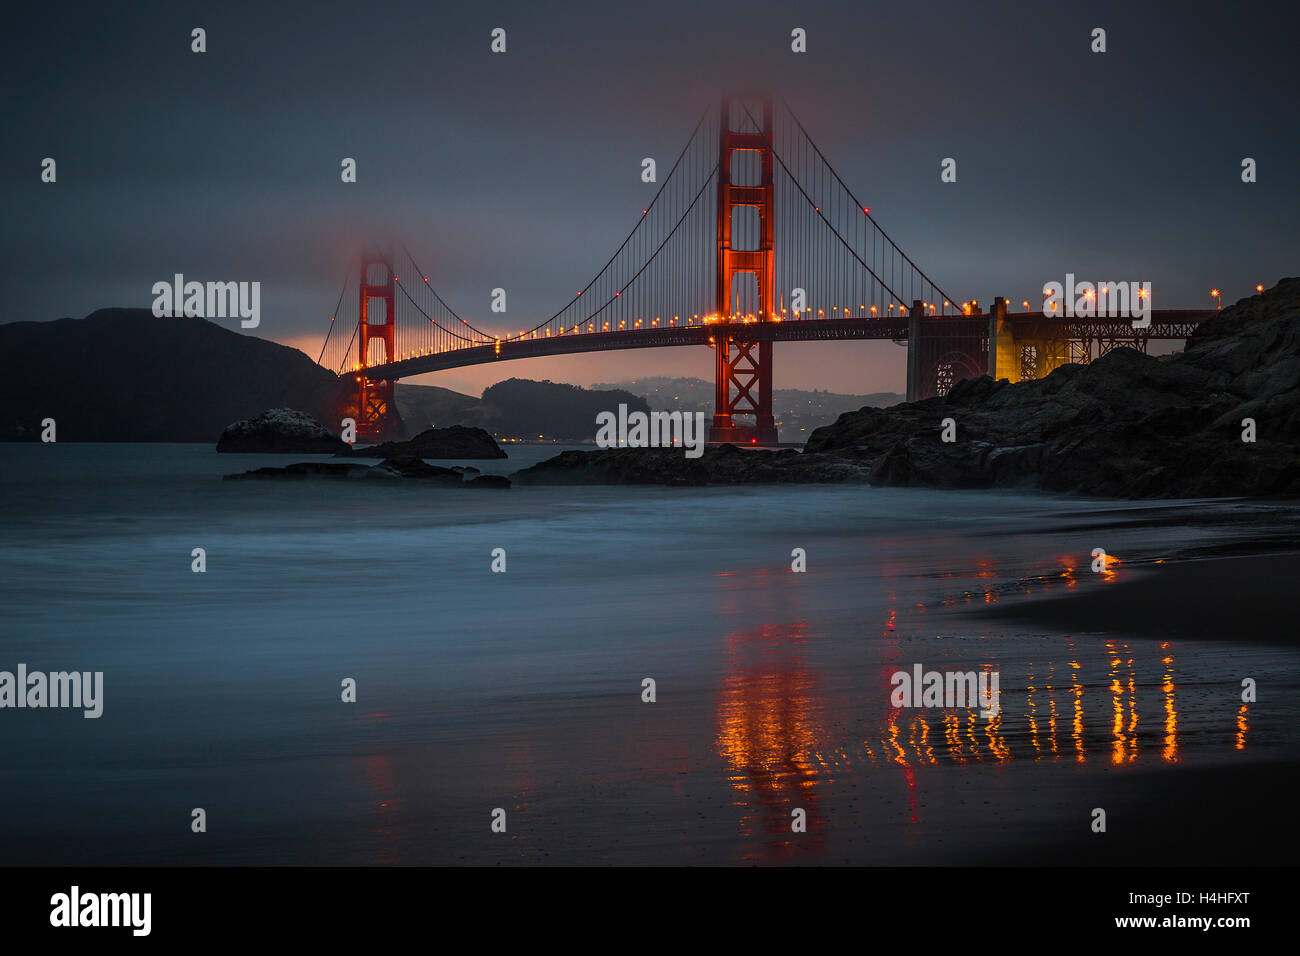 The Golden Gate Bridge at dusk, photographed from Baker Beach - Stock Image